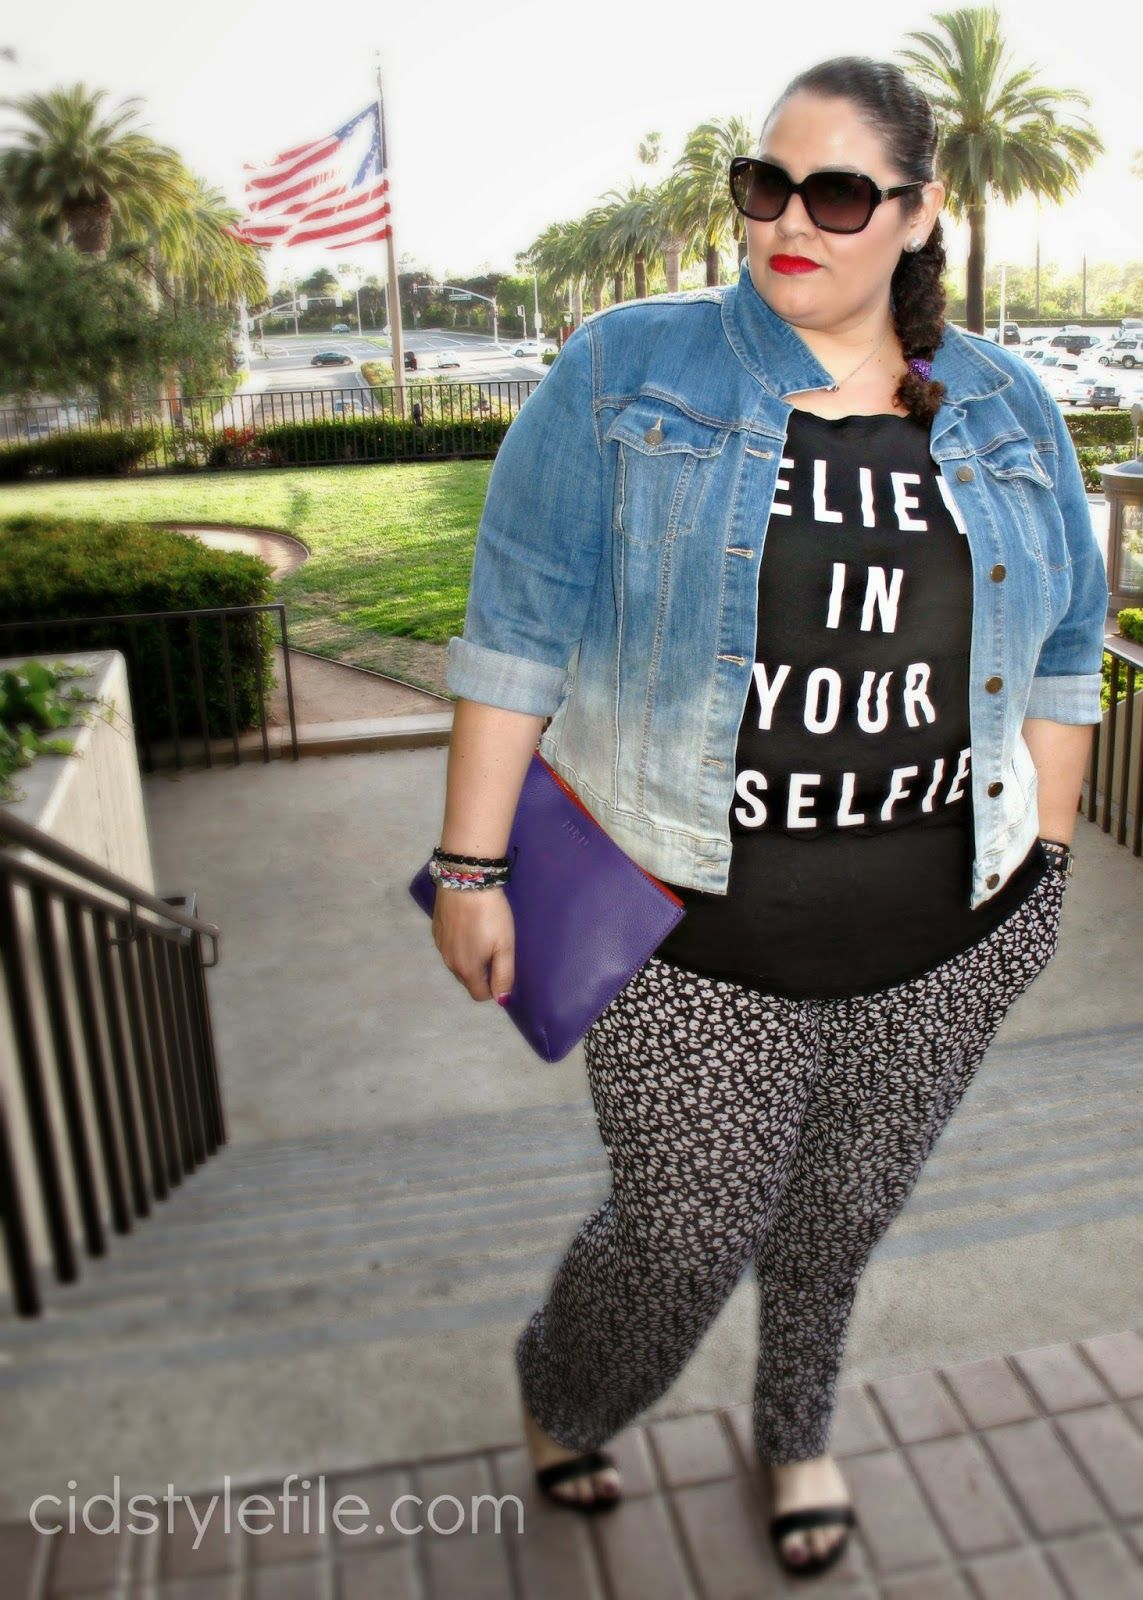 5338ba51fde4 Believe In Your  Selfie one of my favorite outfits  ootd  psfashion. Find  this Pin and more on Cid Style File ...